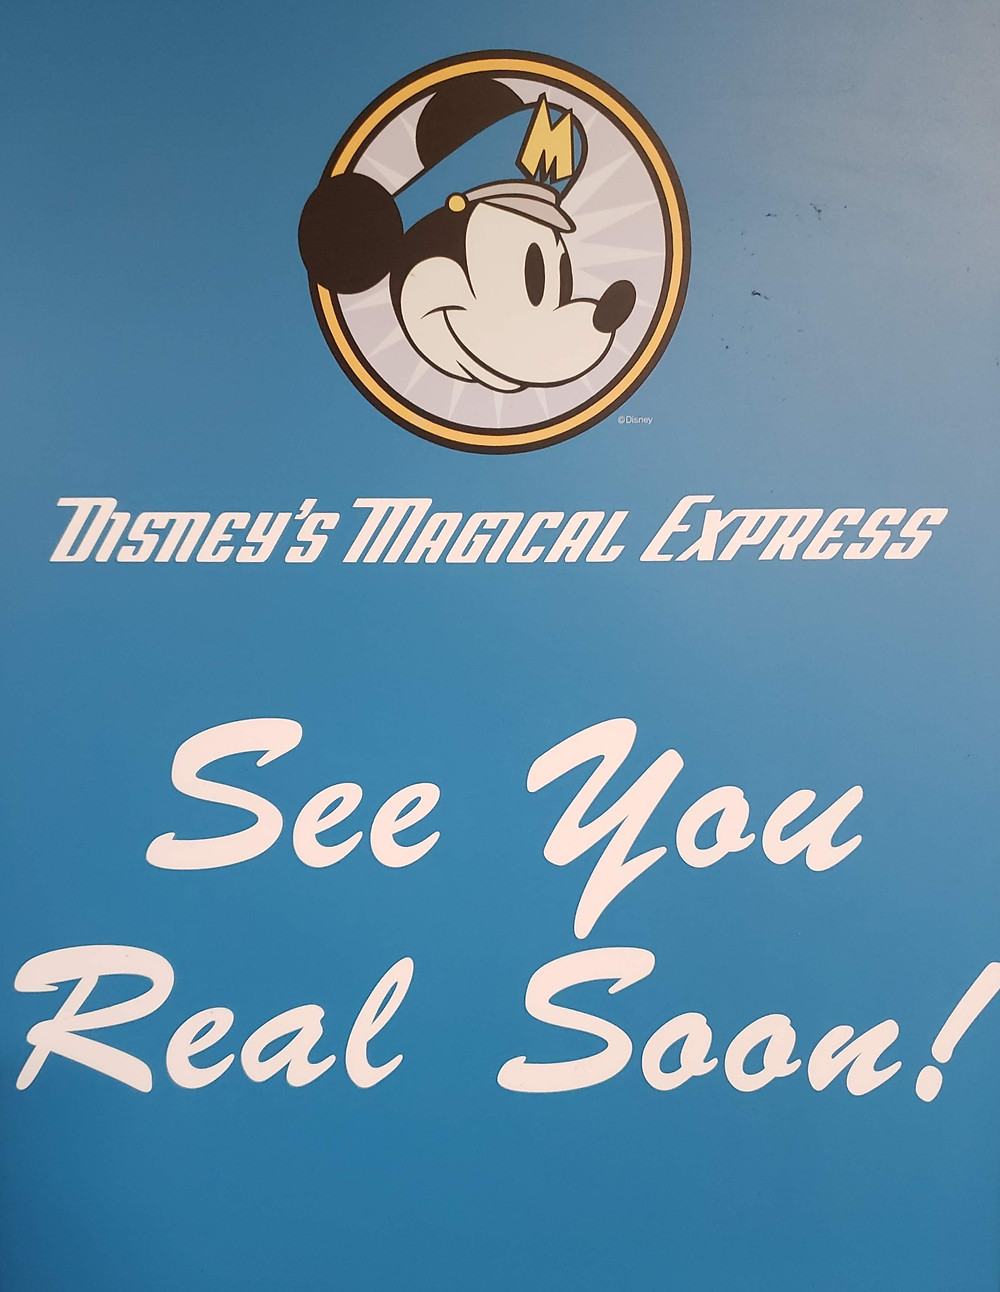 This sign bids you farewell at MCO